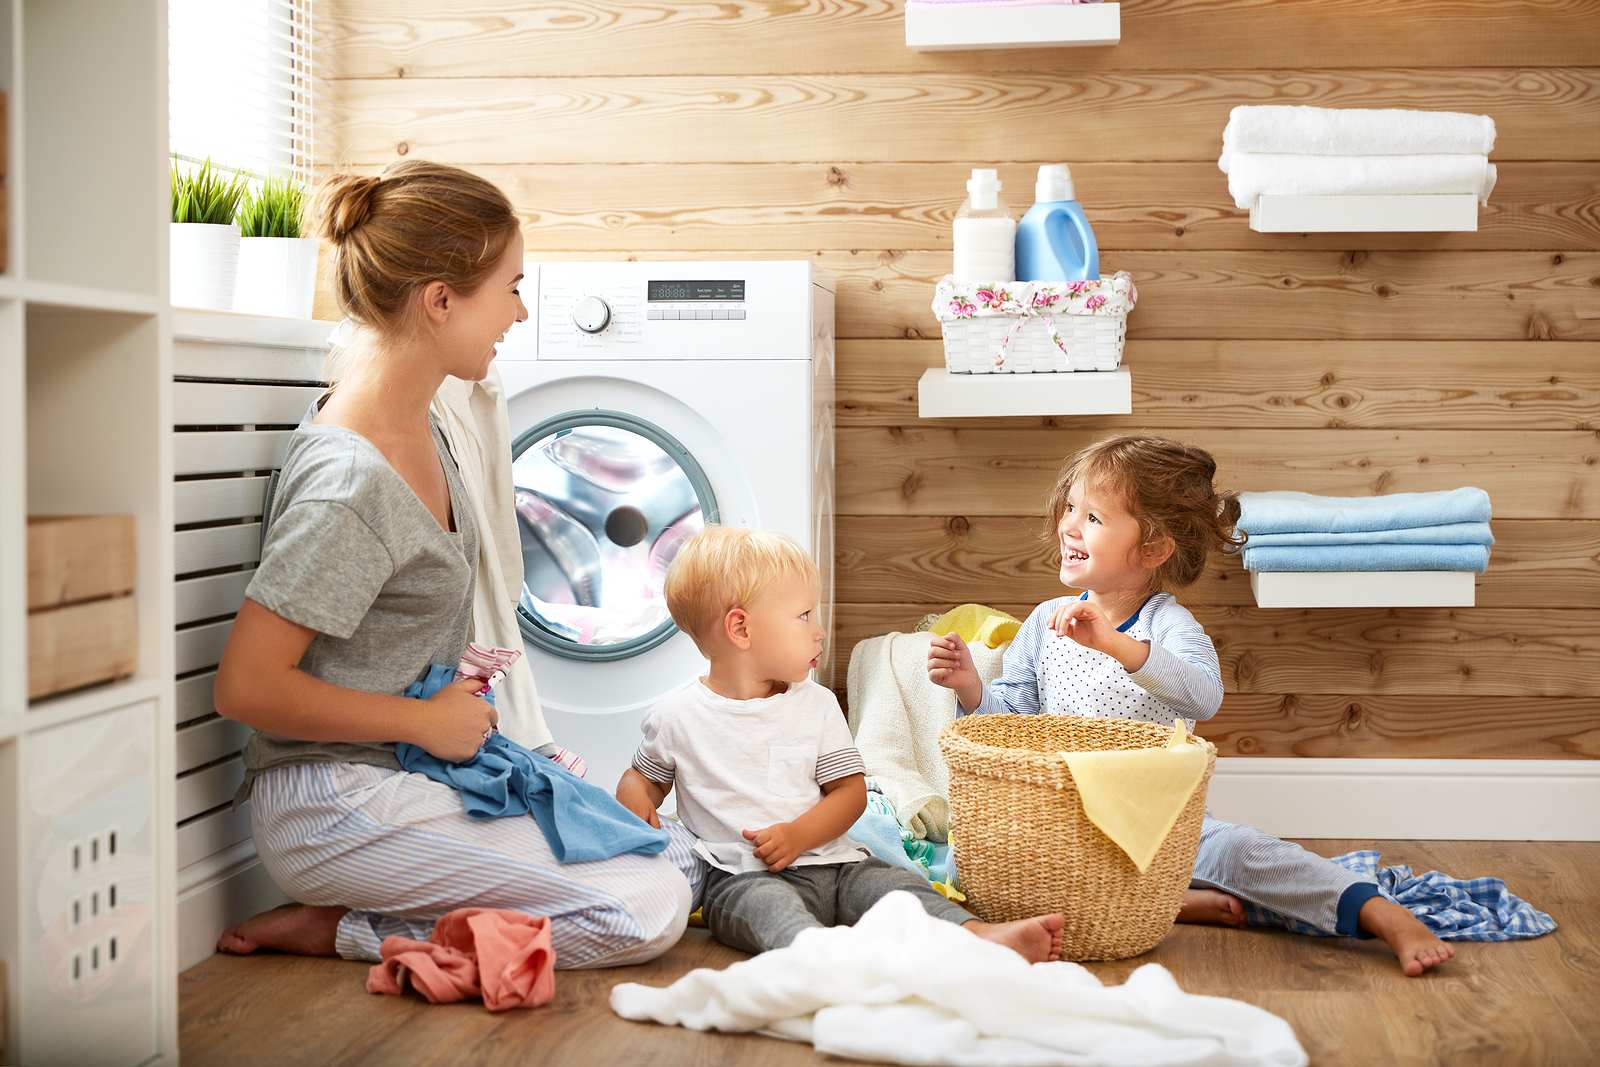 Here are some ways to attack household chores using attachment parenting principles.